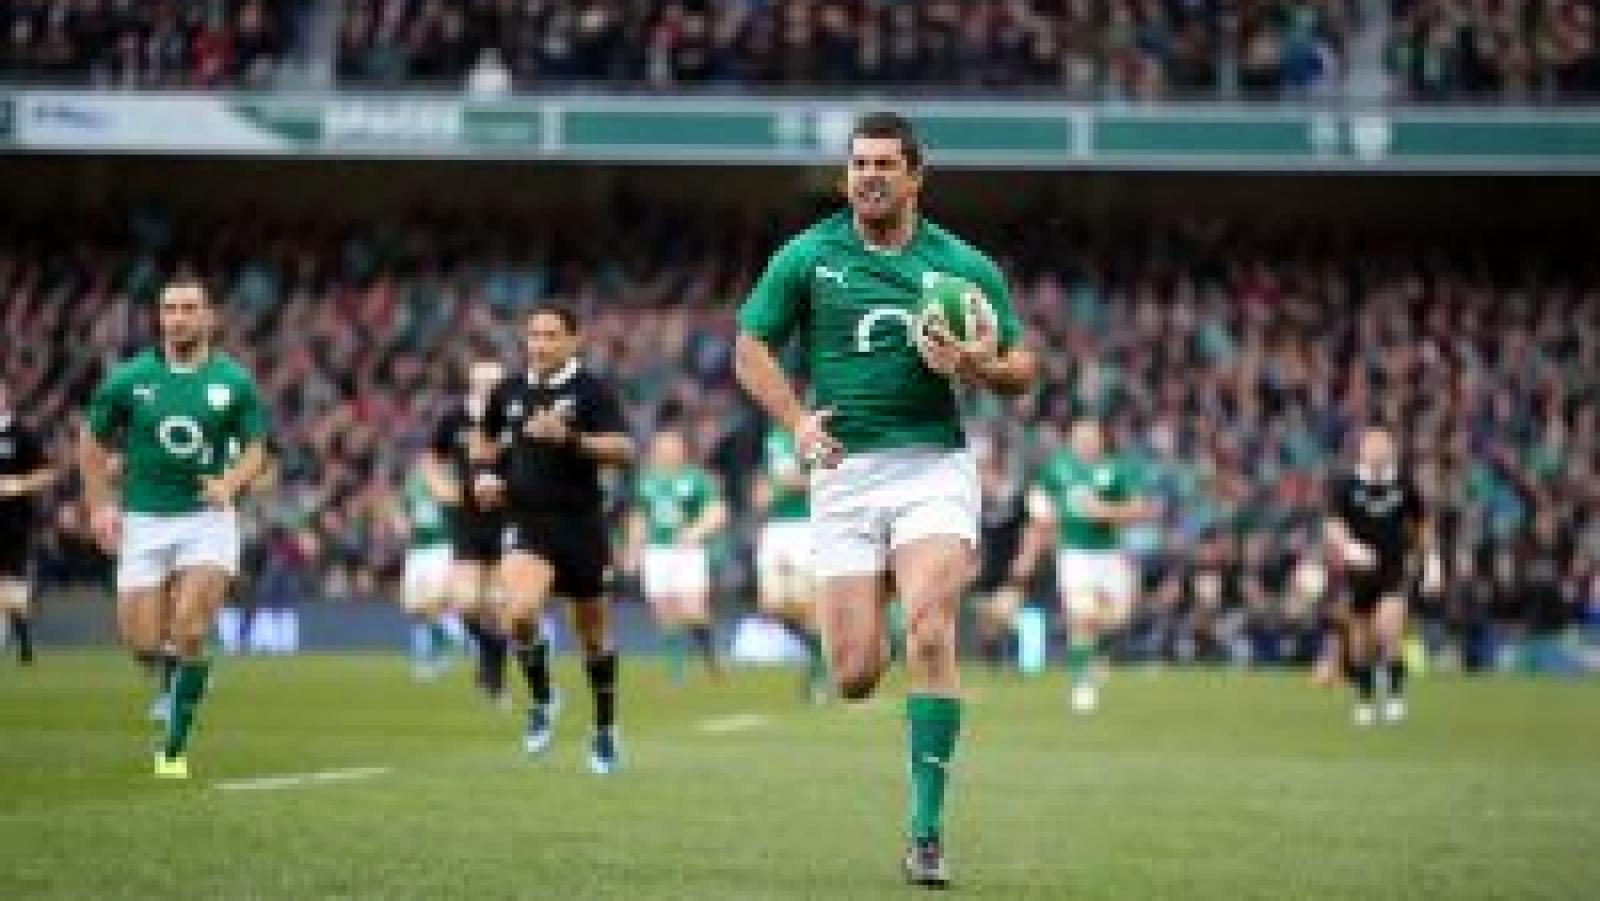 Rob Kearney on a rugby pitch